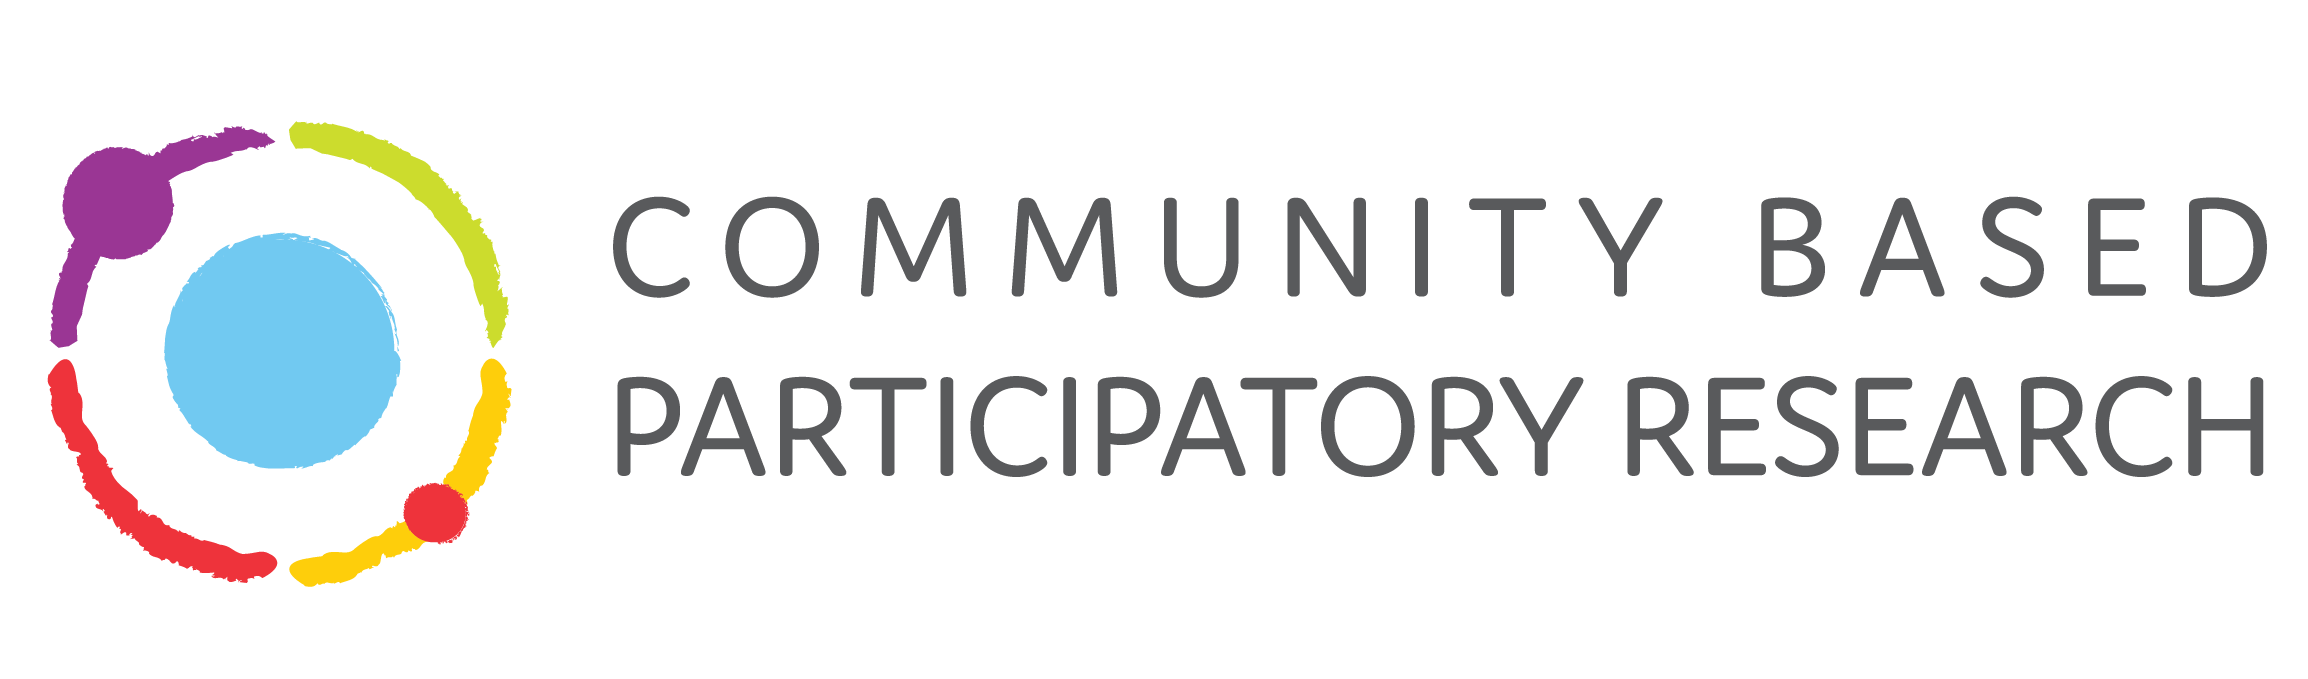 Community Based Participatory Research Toolkit logo